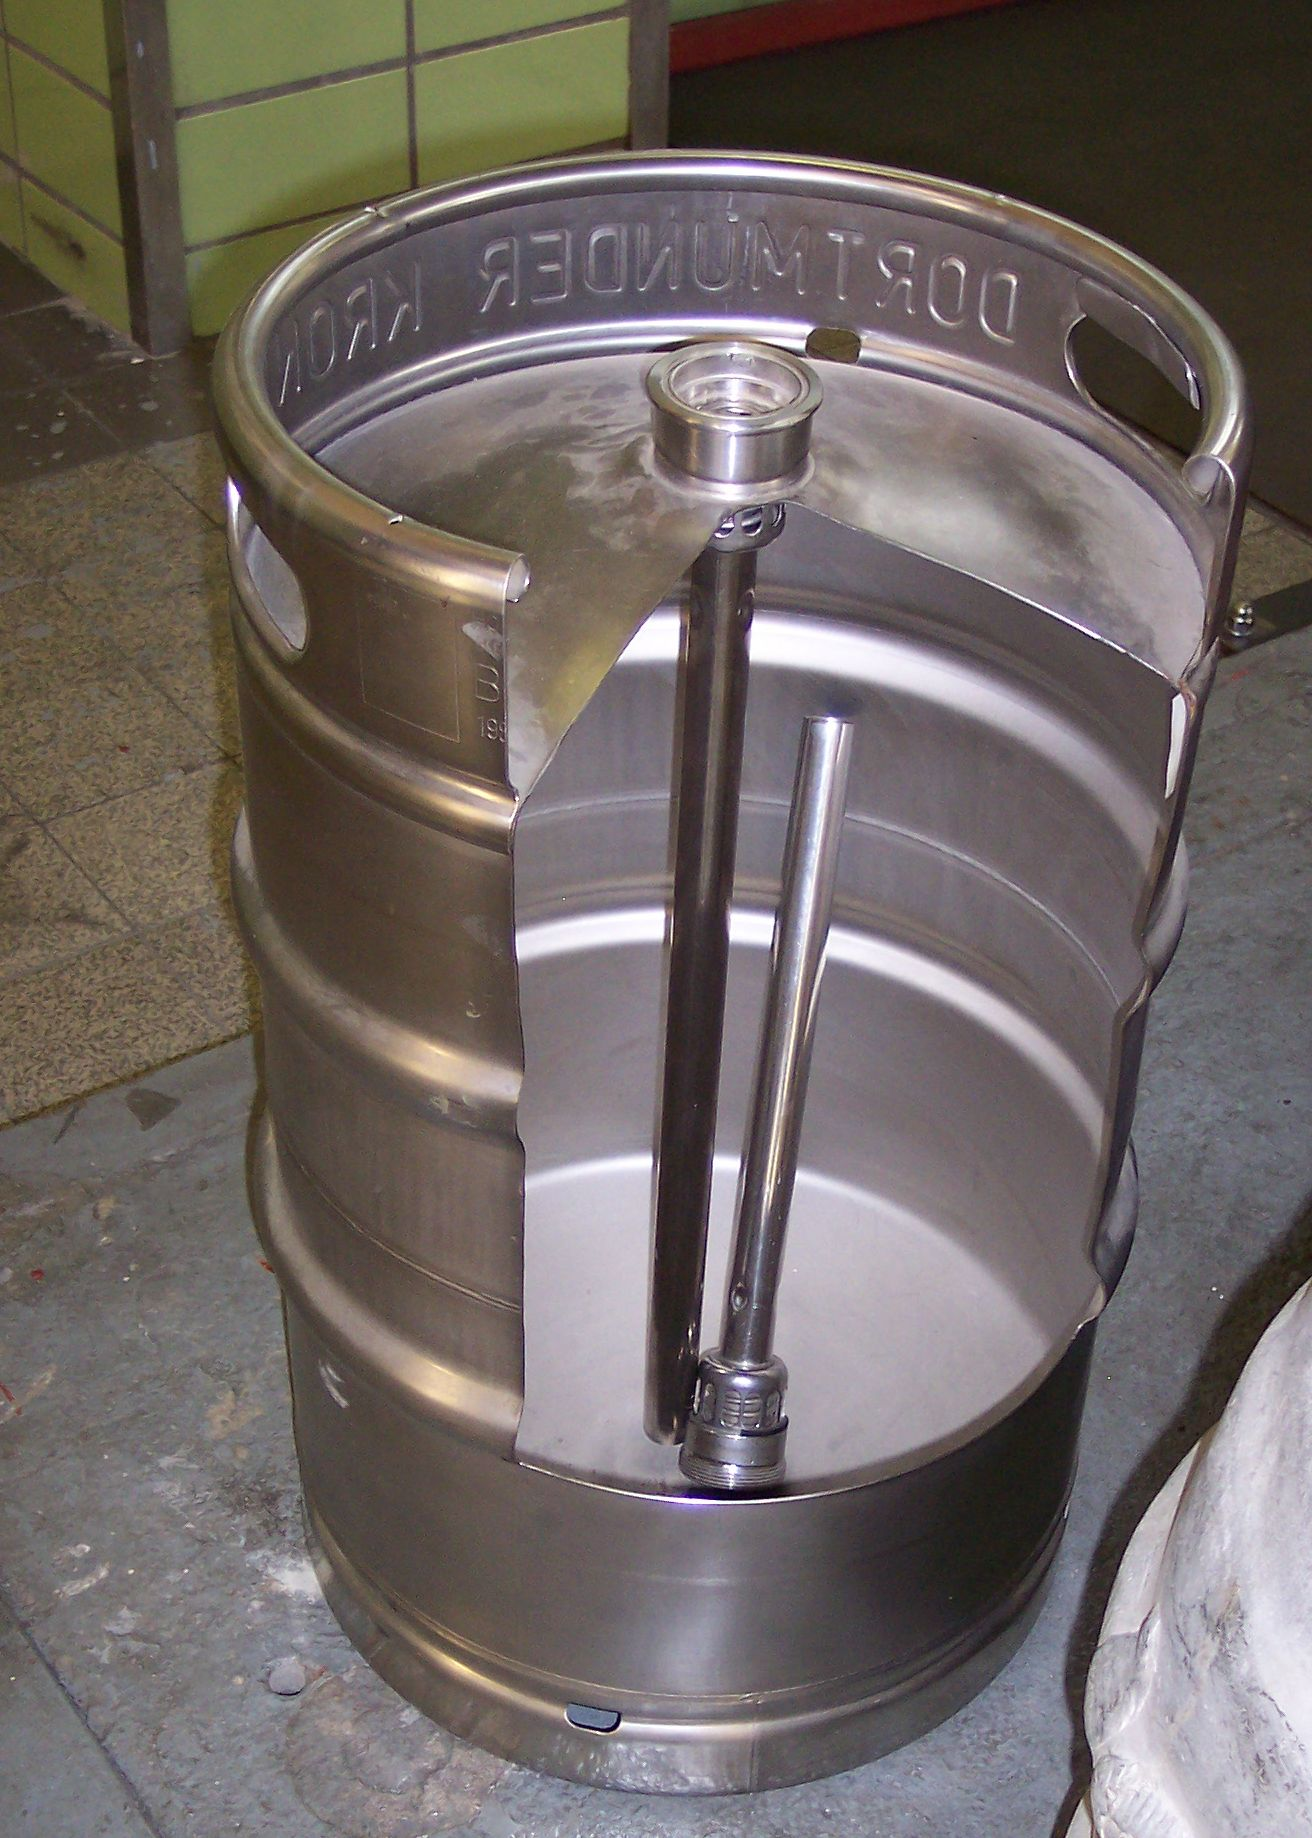 How to open a beer keg - Security sistems